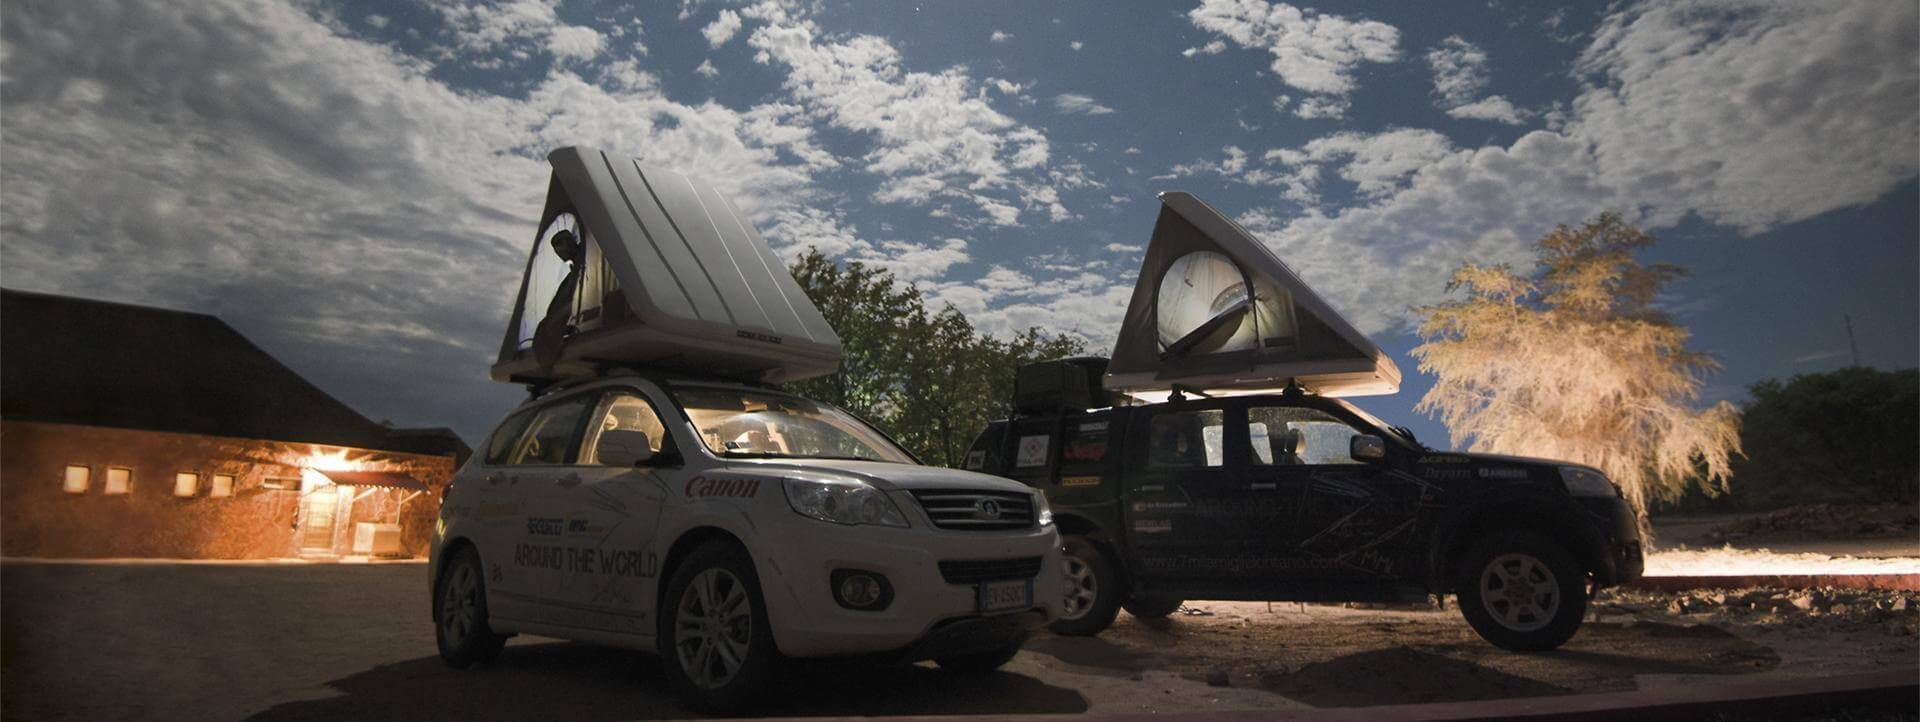 The Columbus Variant Roof Tent